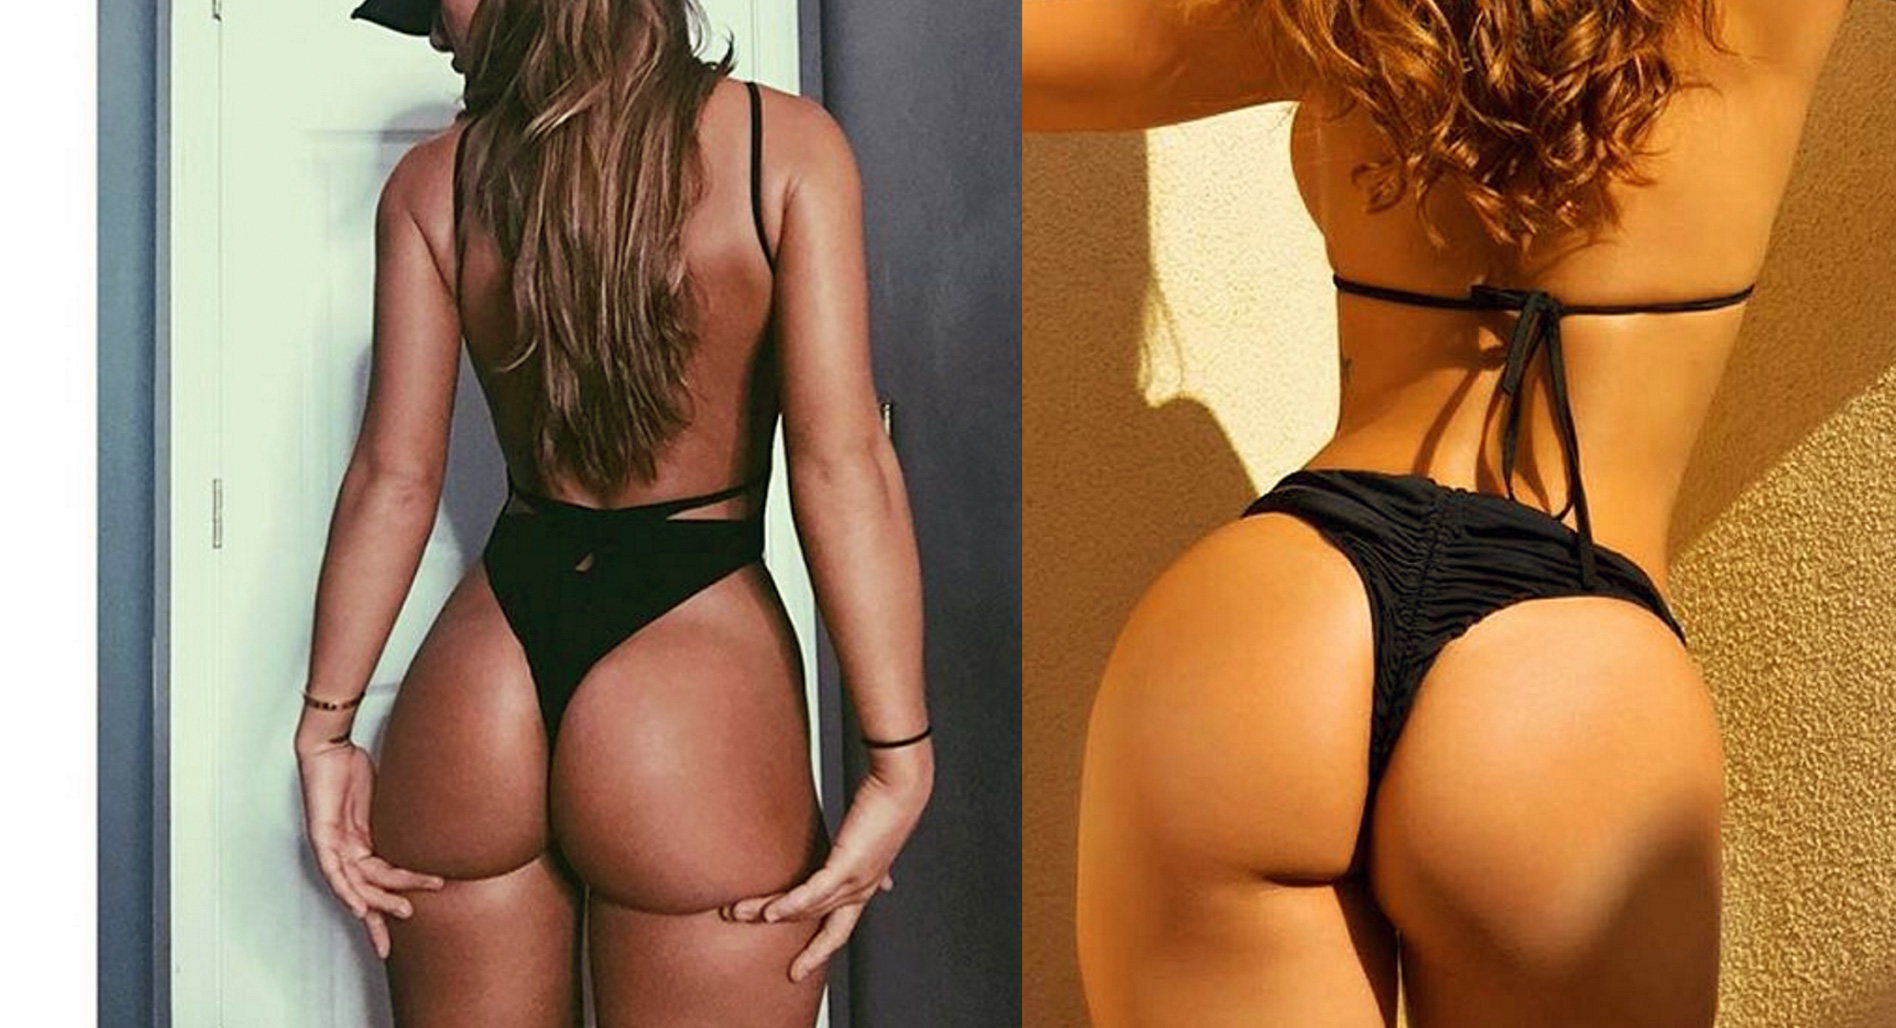 OMG! Best Glutes, She REALLY Squats Part 2